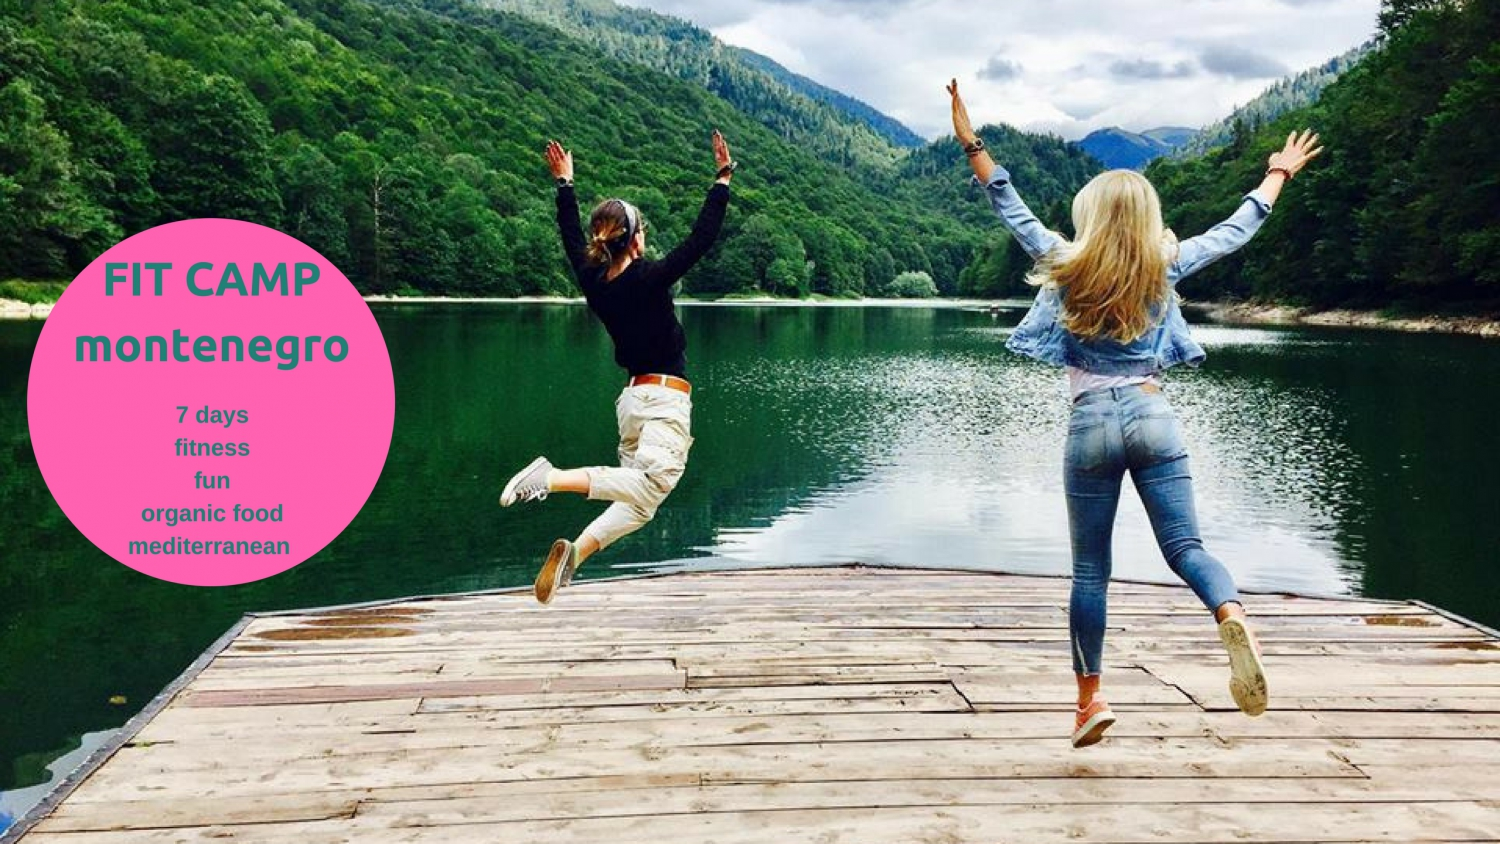 Top 5 Things To Do in Montenegro